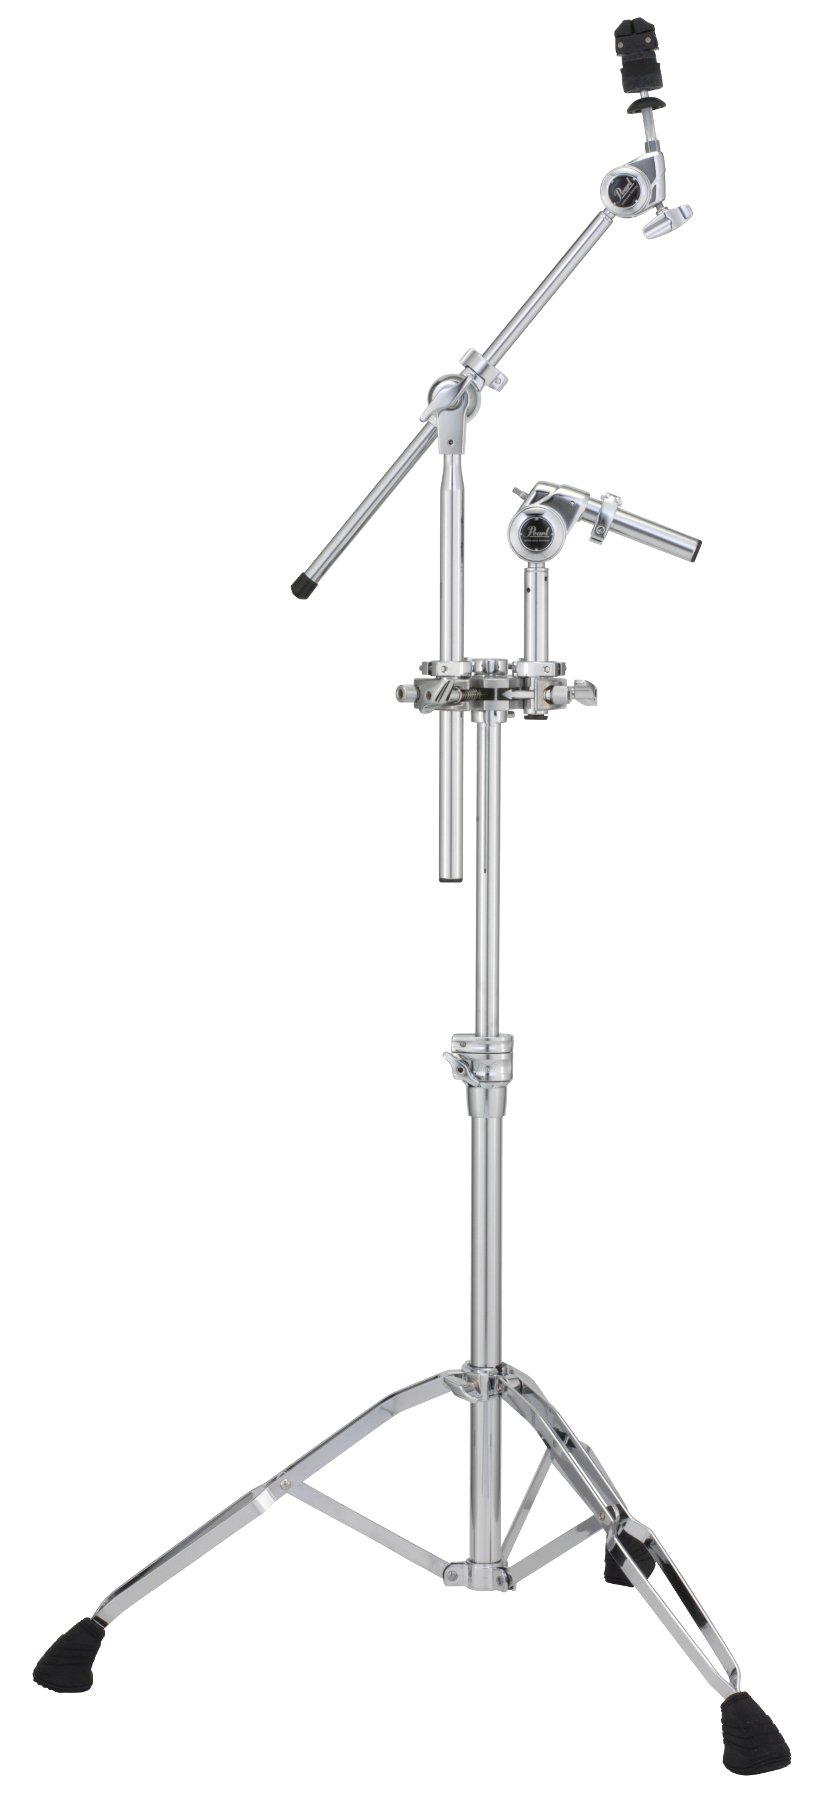 Tom/Cymbal Stand with GyroLock, 360° Adjustable Tom Positioning